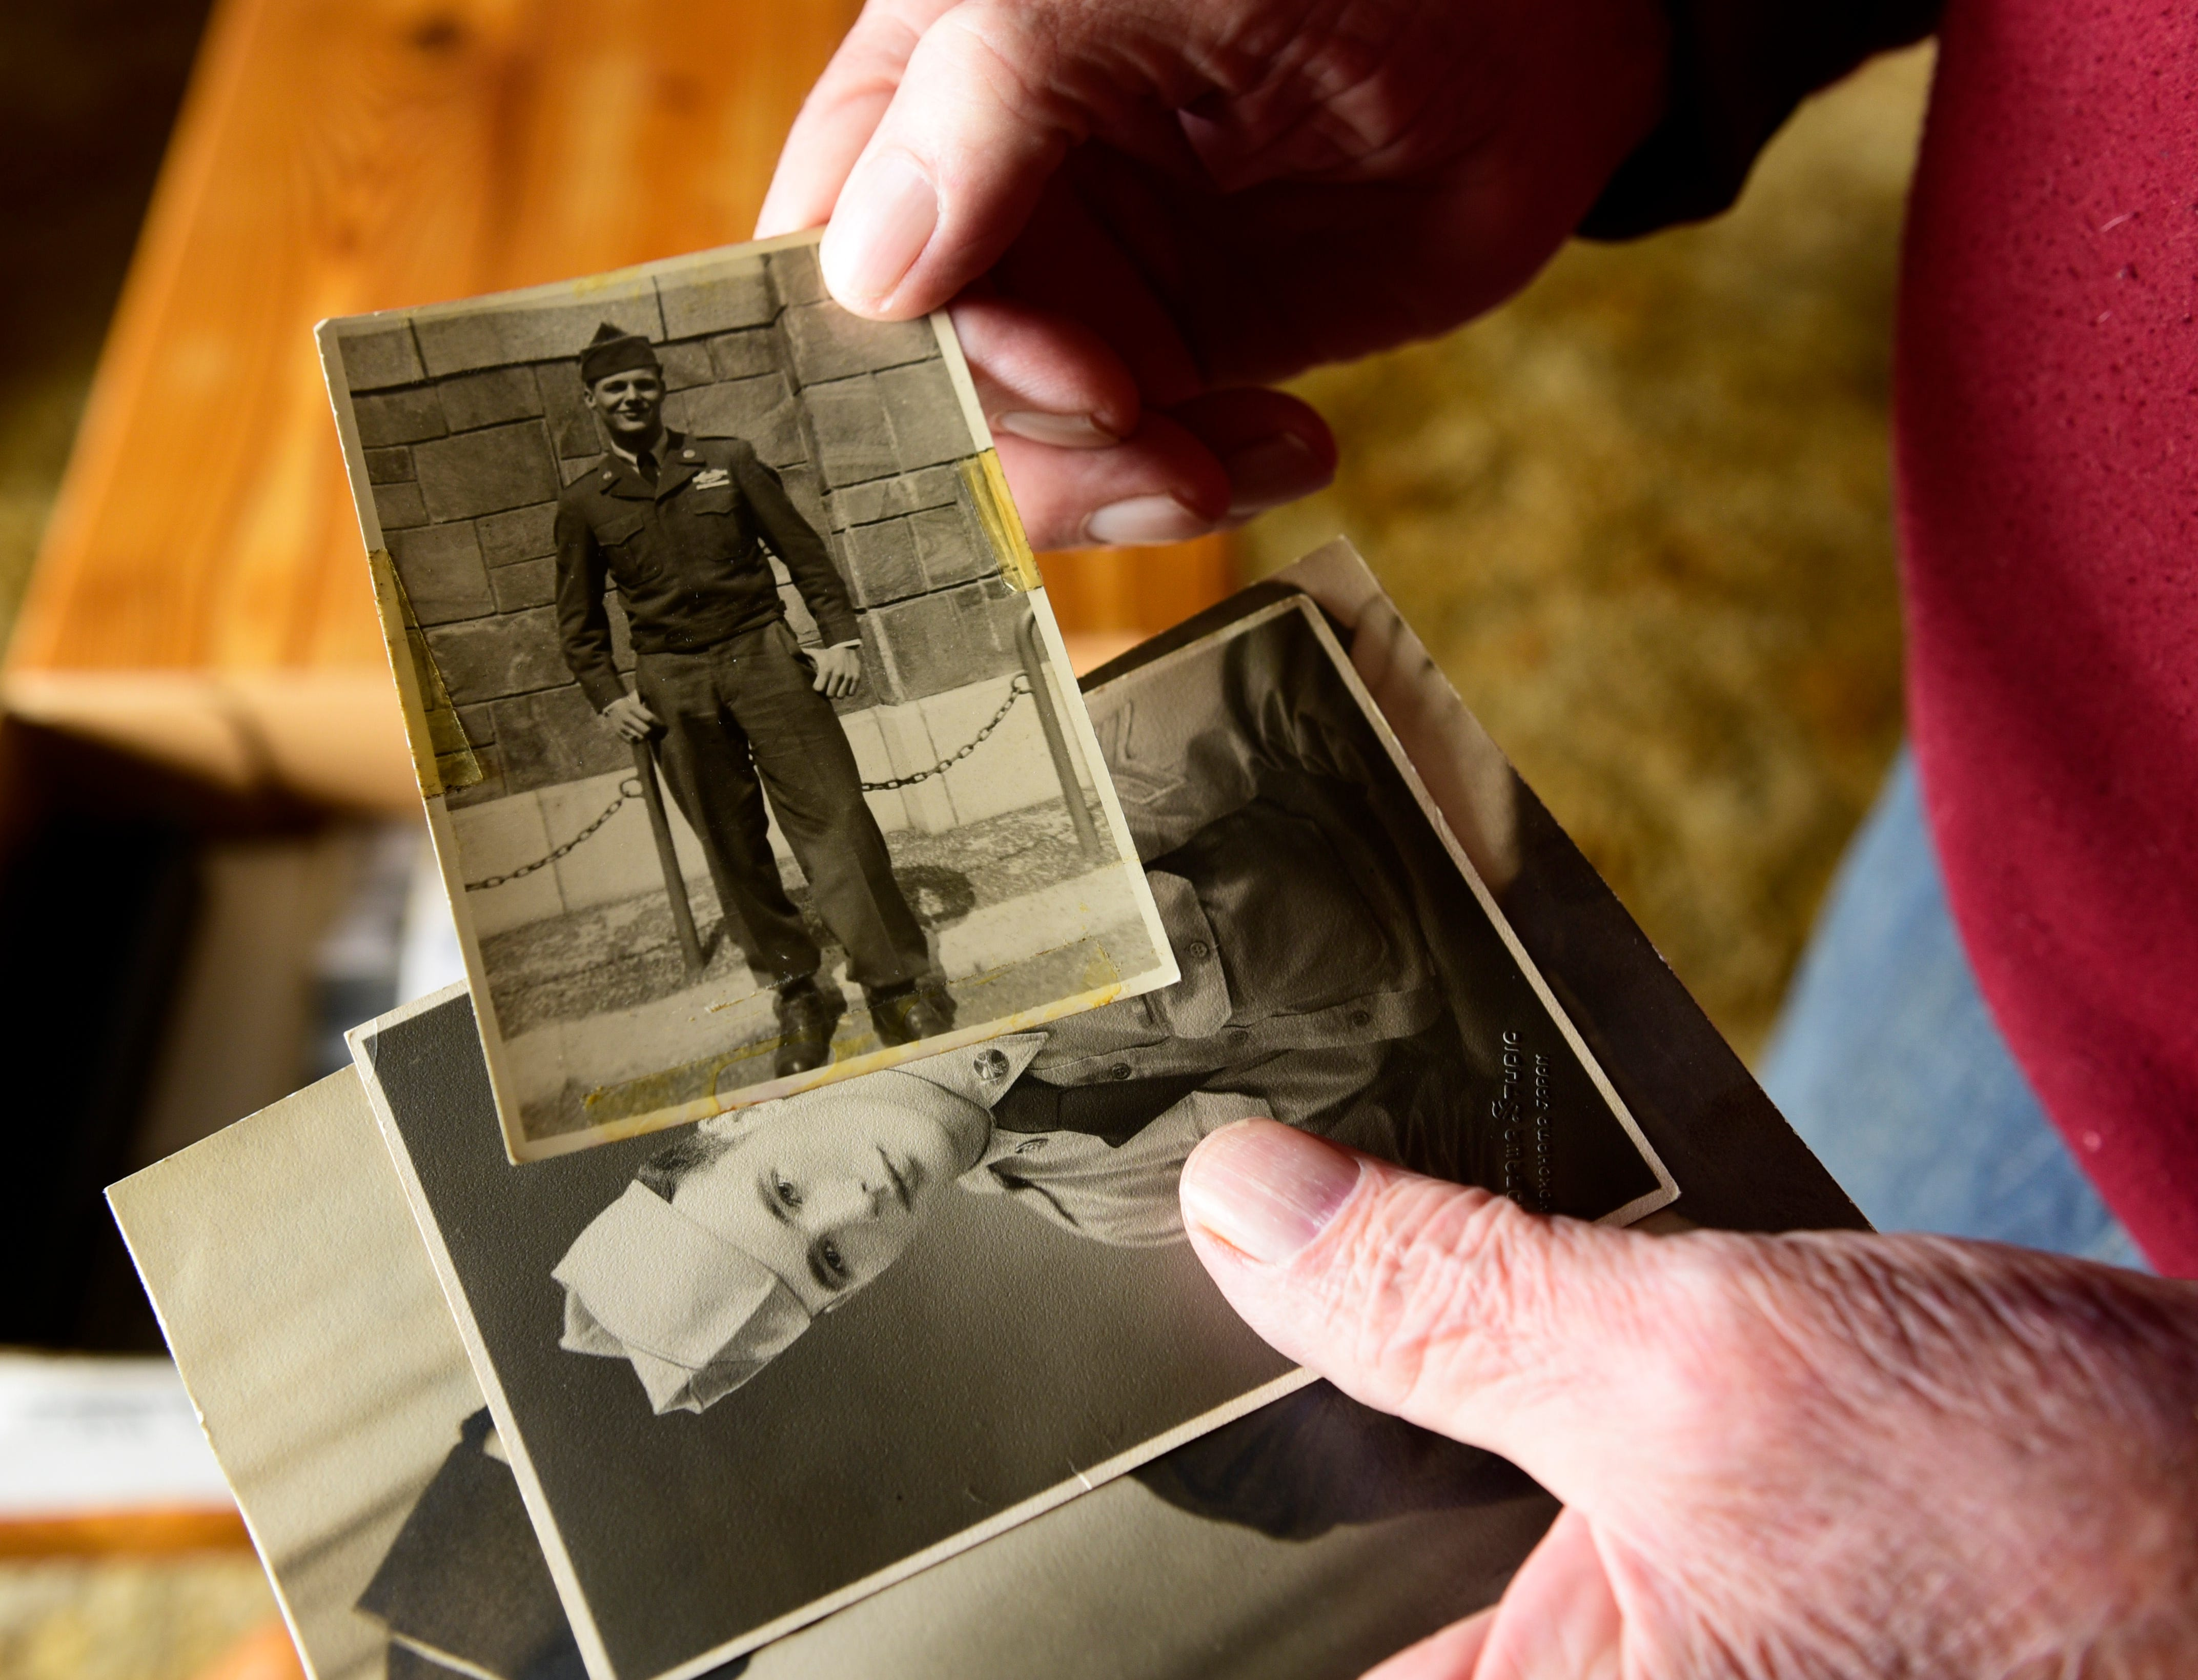 Edward Foose holds a photo of himself as a soldier during the Korean War. During the three years of fighting in Korea, more than 1.5 million Americans were drafted for military